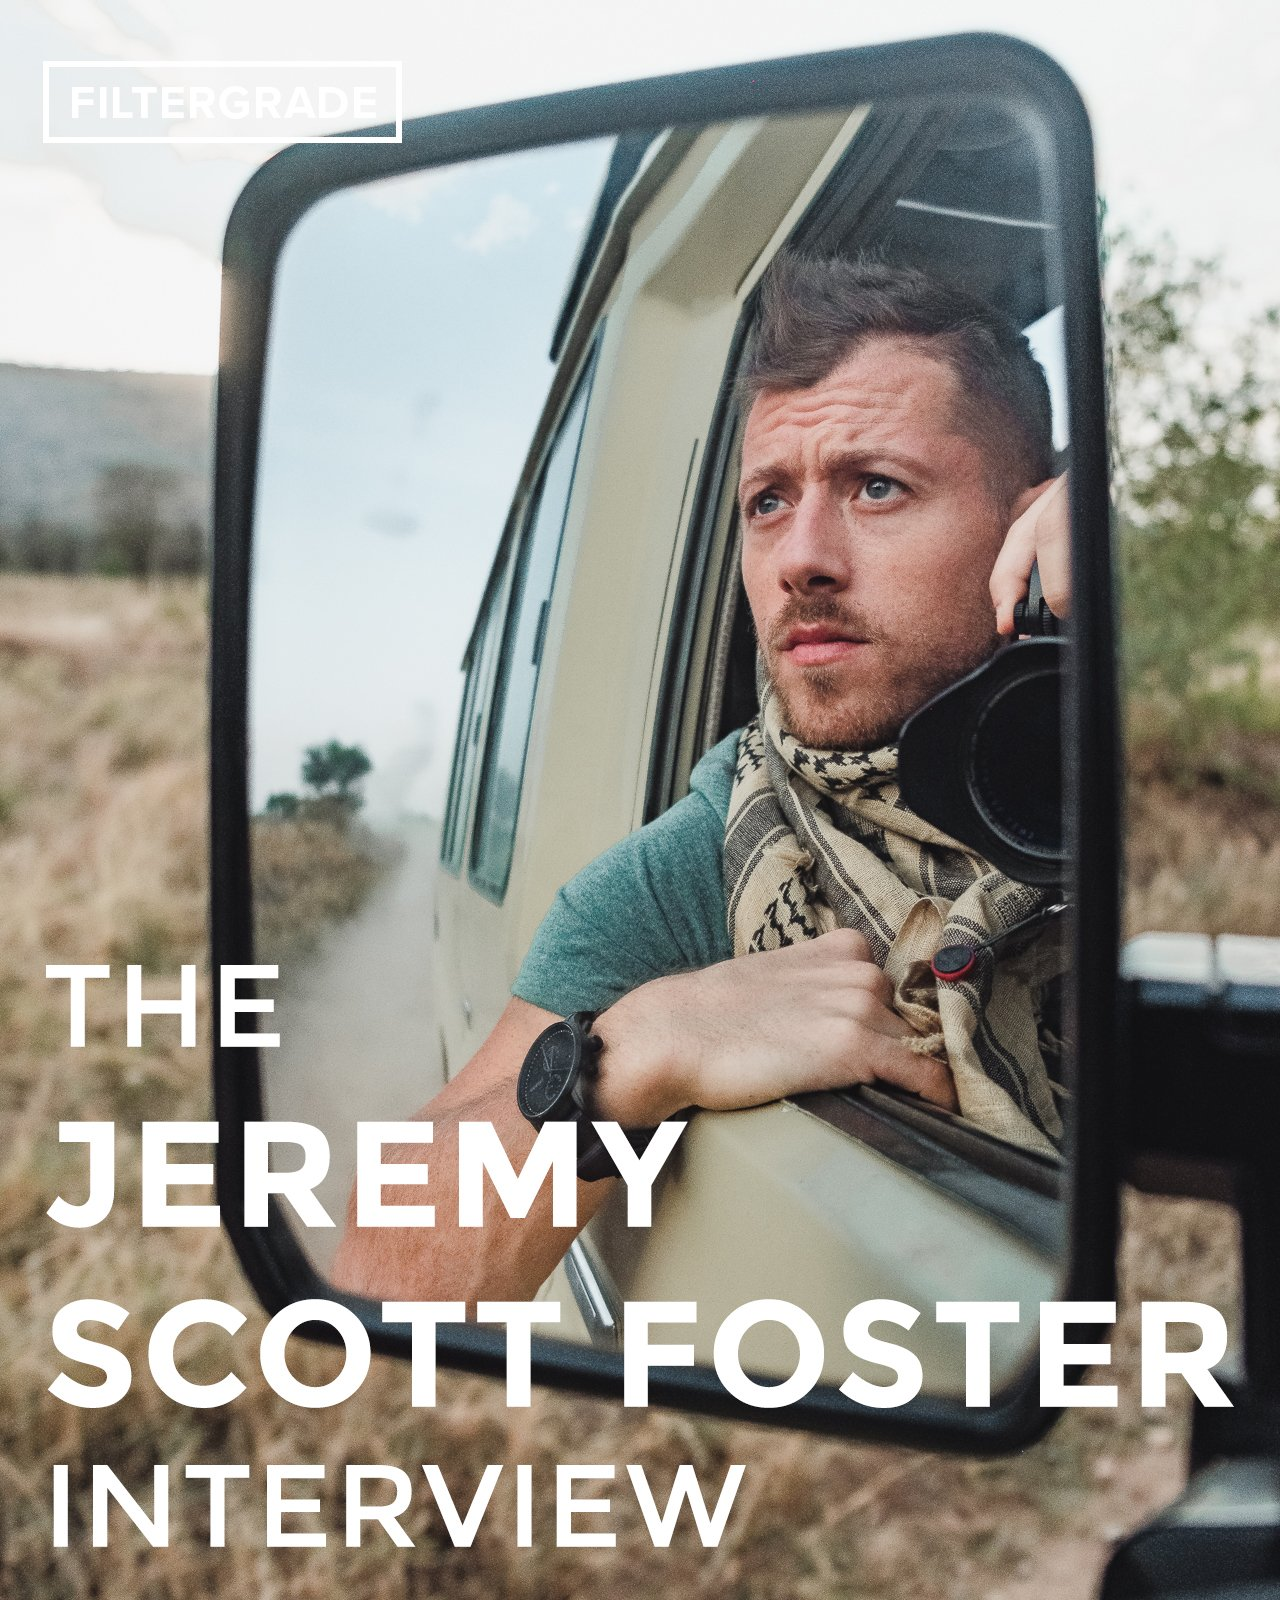 The-Jeremy-Scott-Foster-Interview-FilterGrade